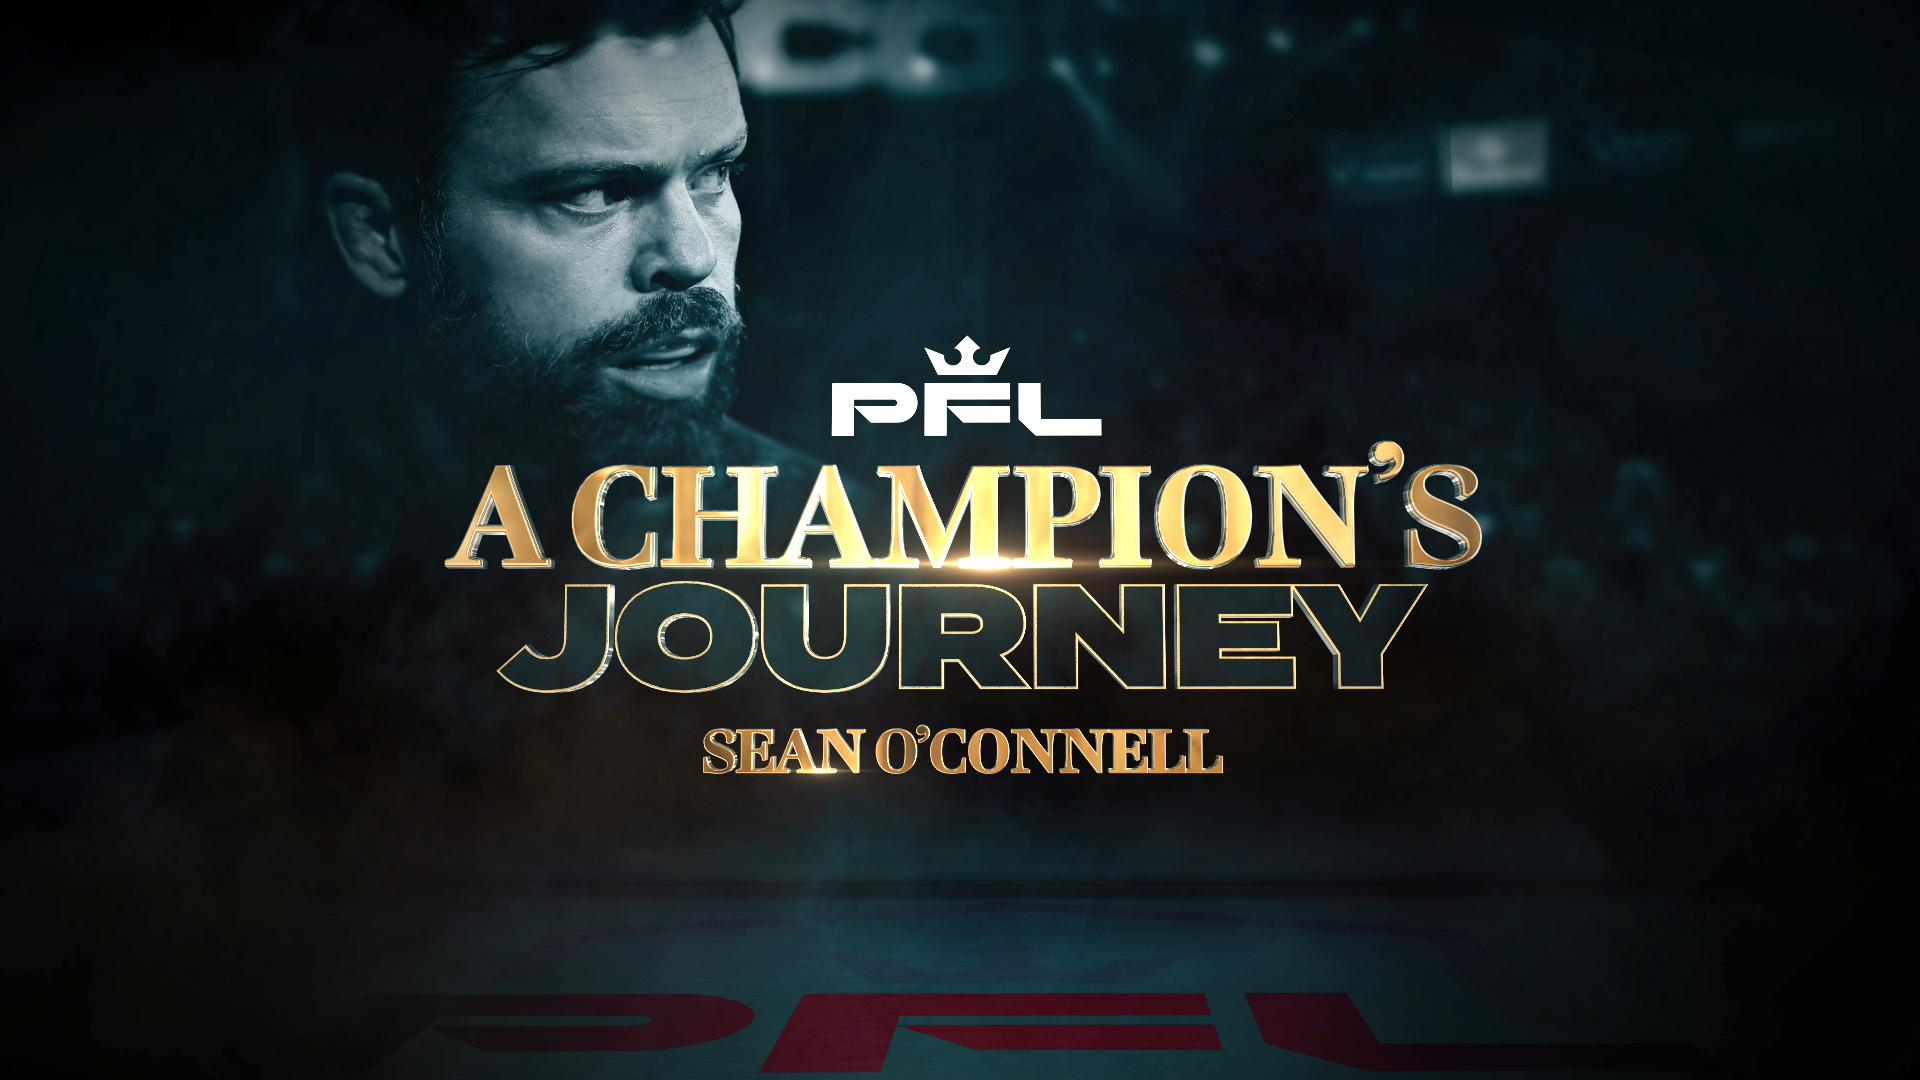 A CHAMPION'S JOURNEY: SEAN O'CONNELL EXTENDED CLIP